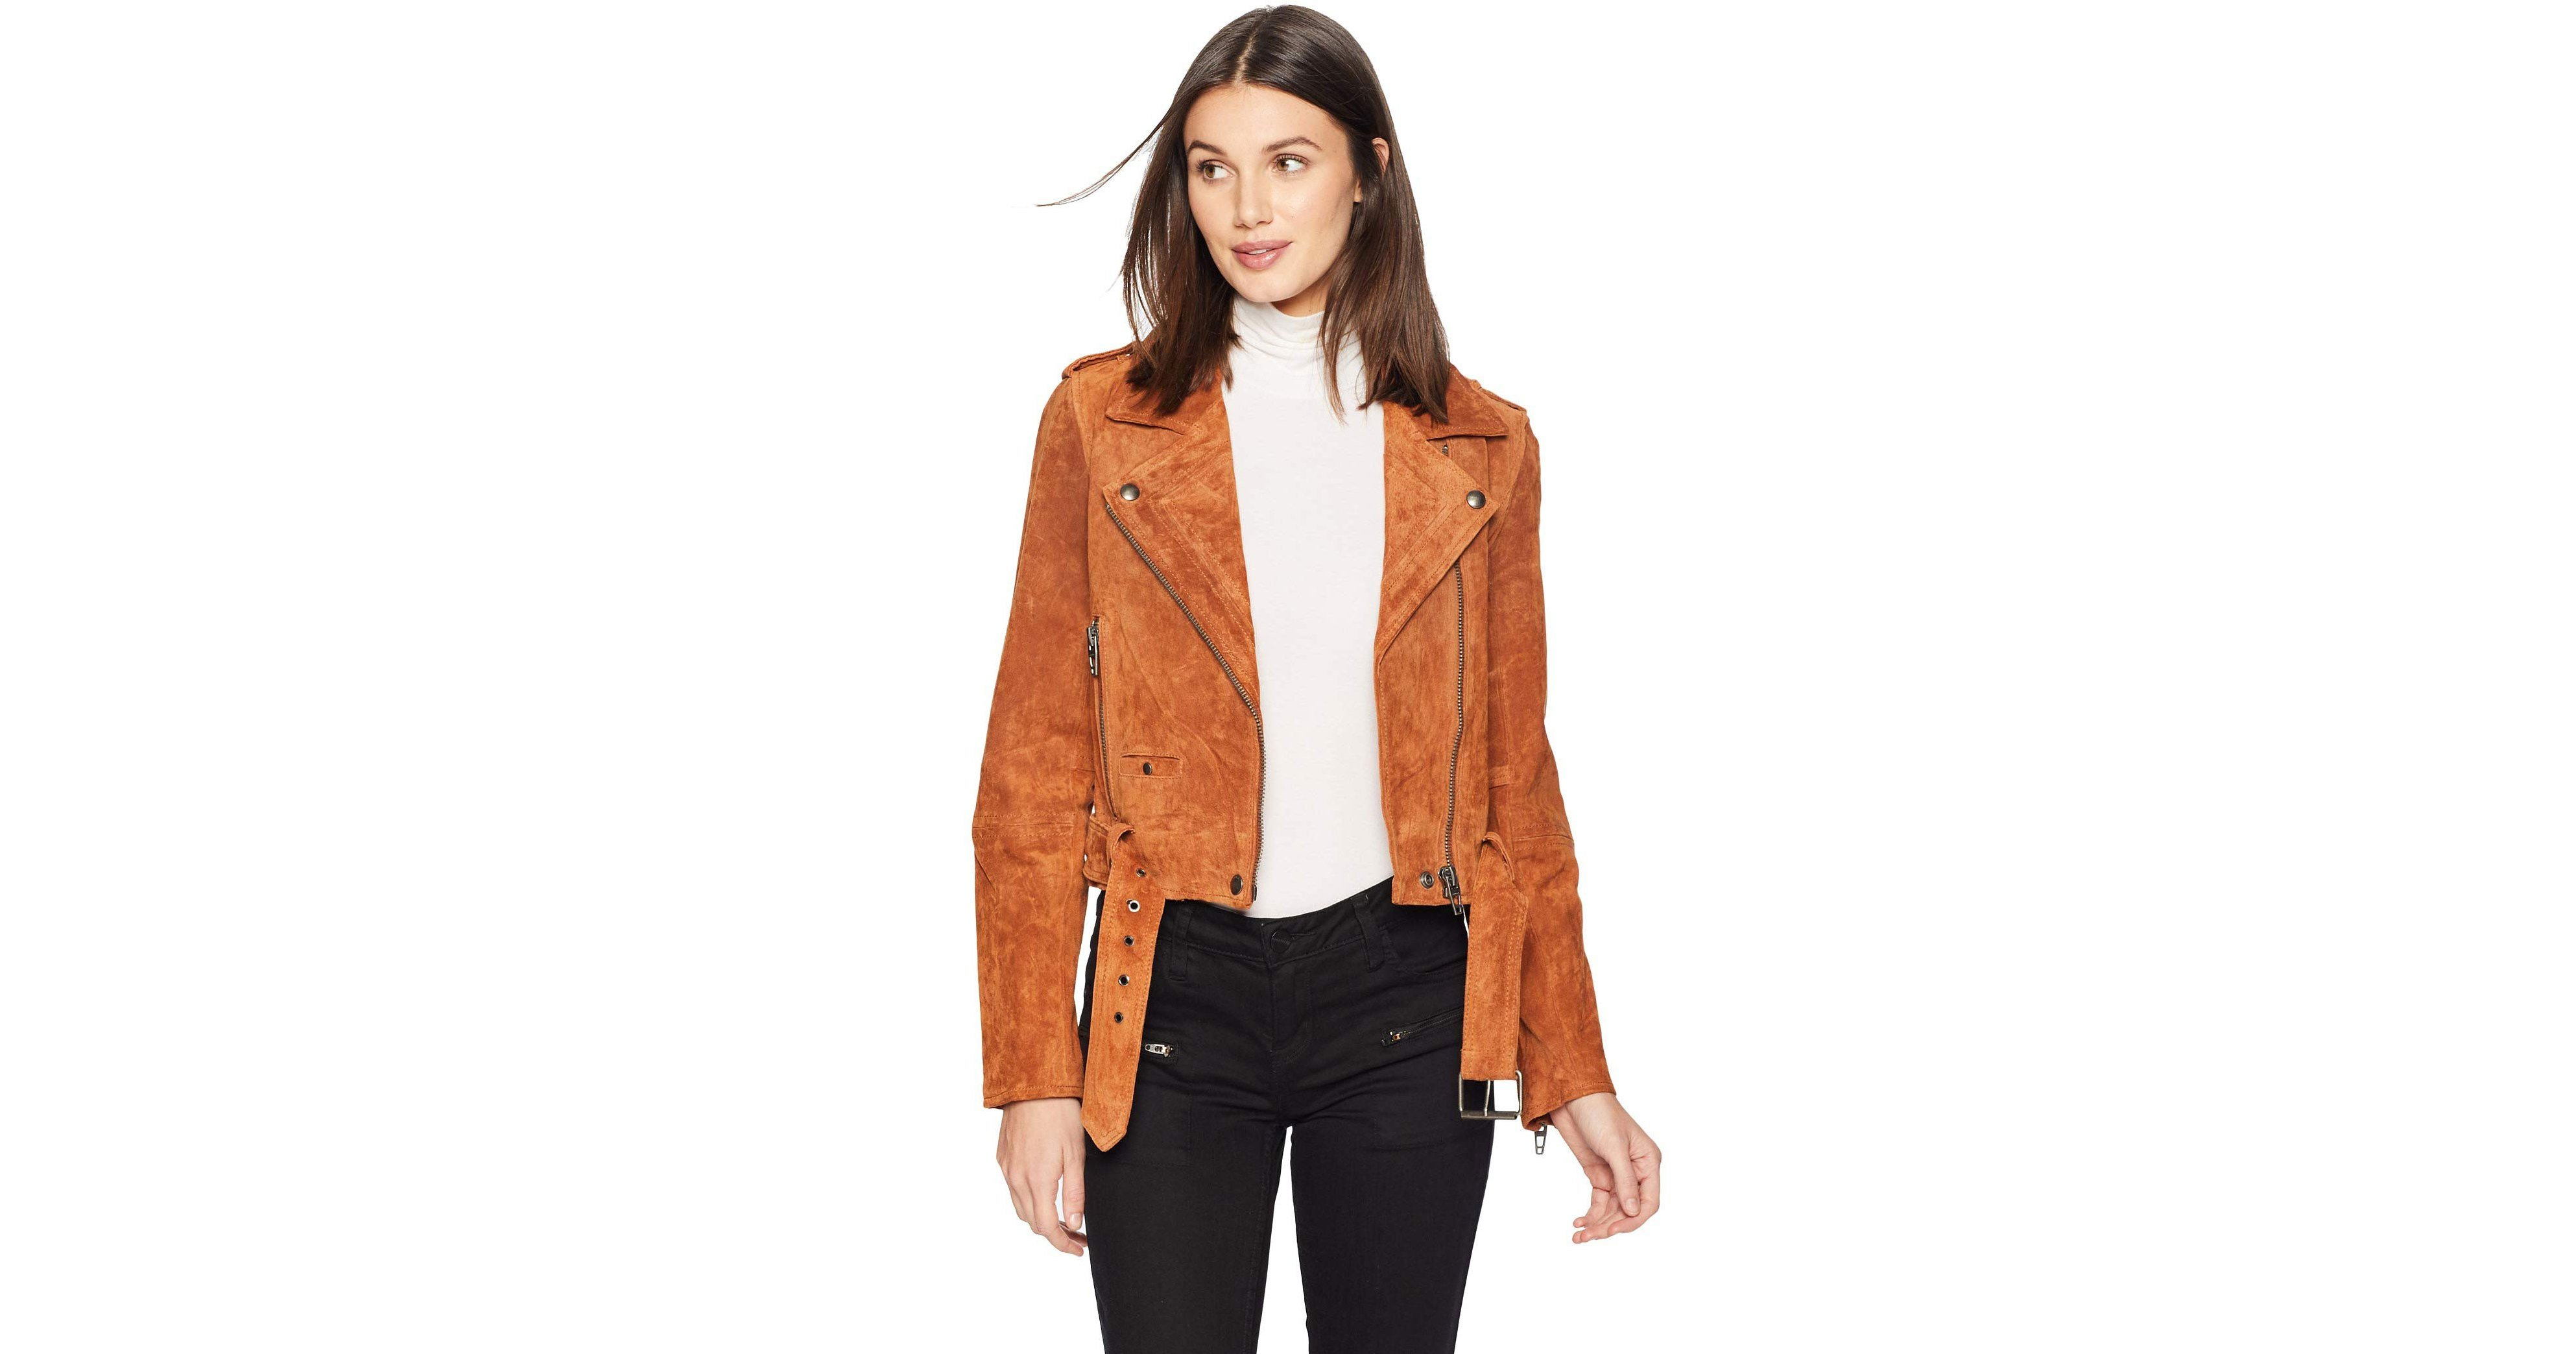 We're Taking Our Edgy Style to New Heights With This Moto Jacket